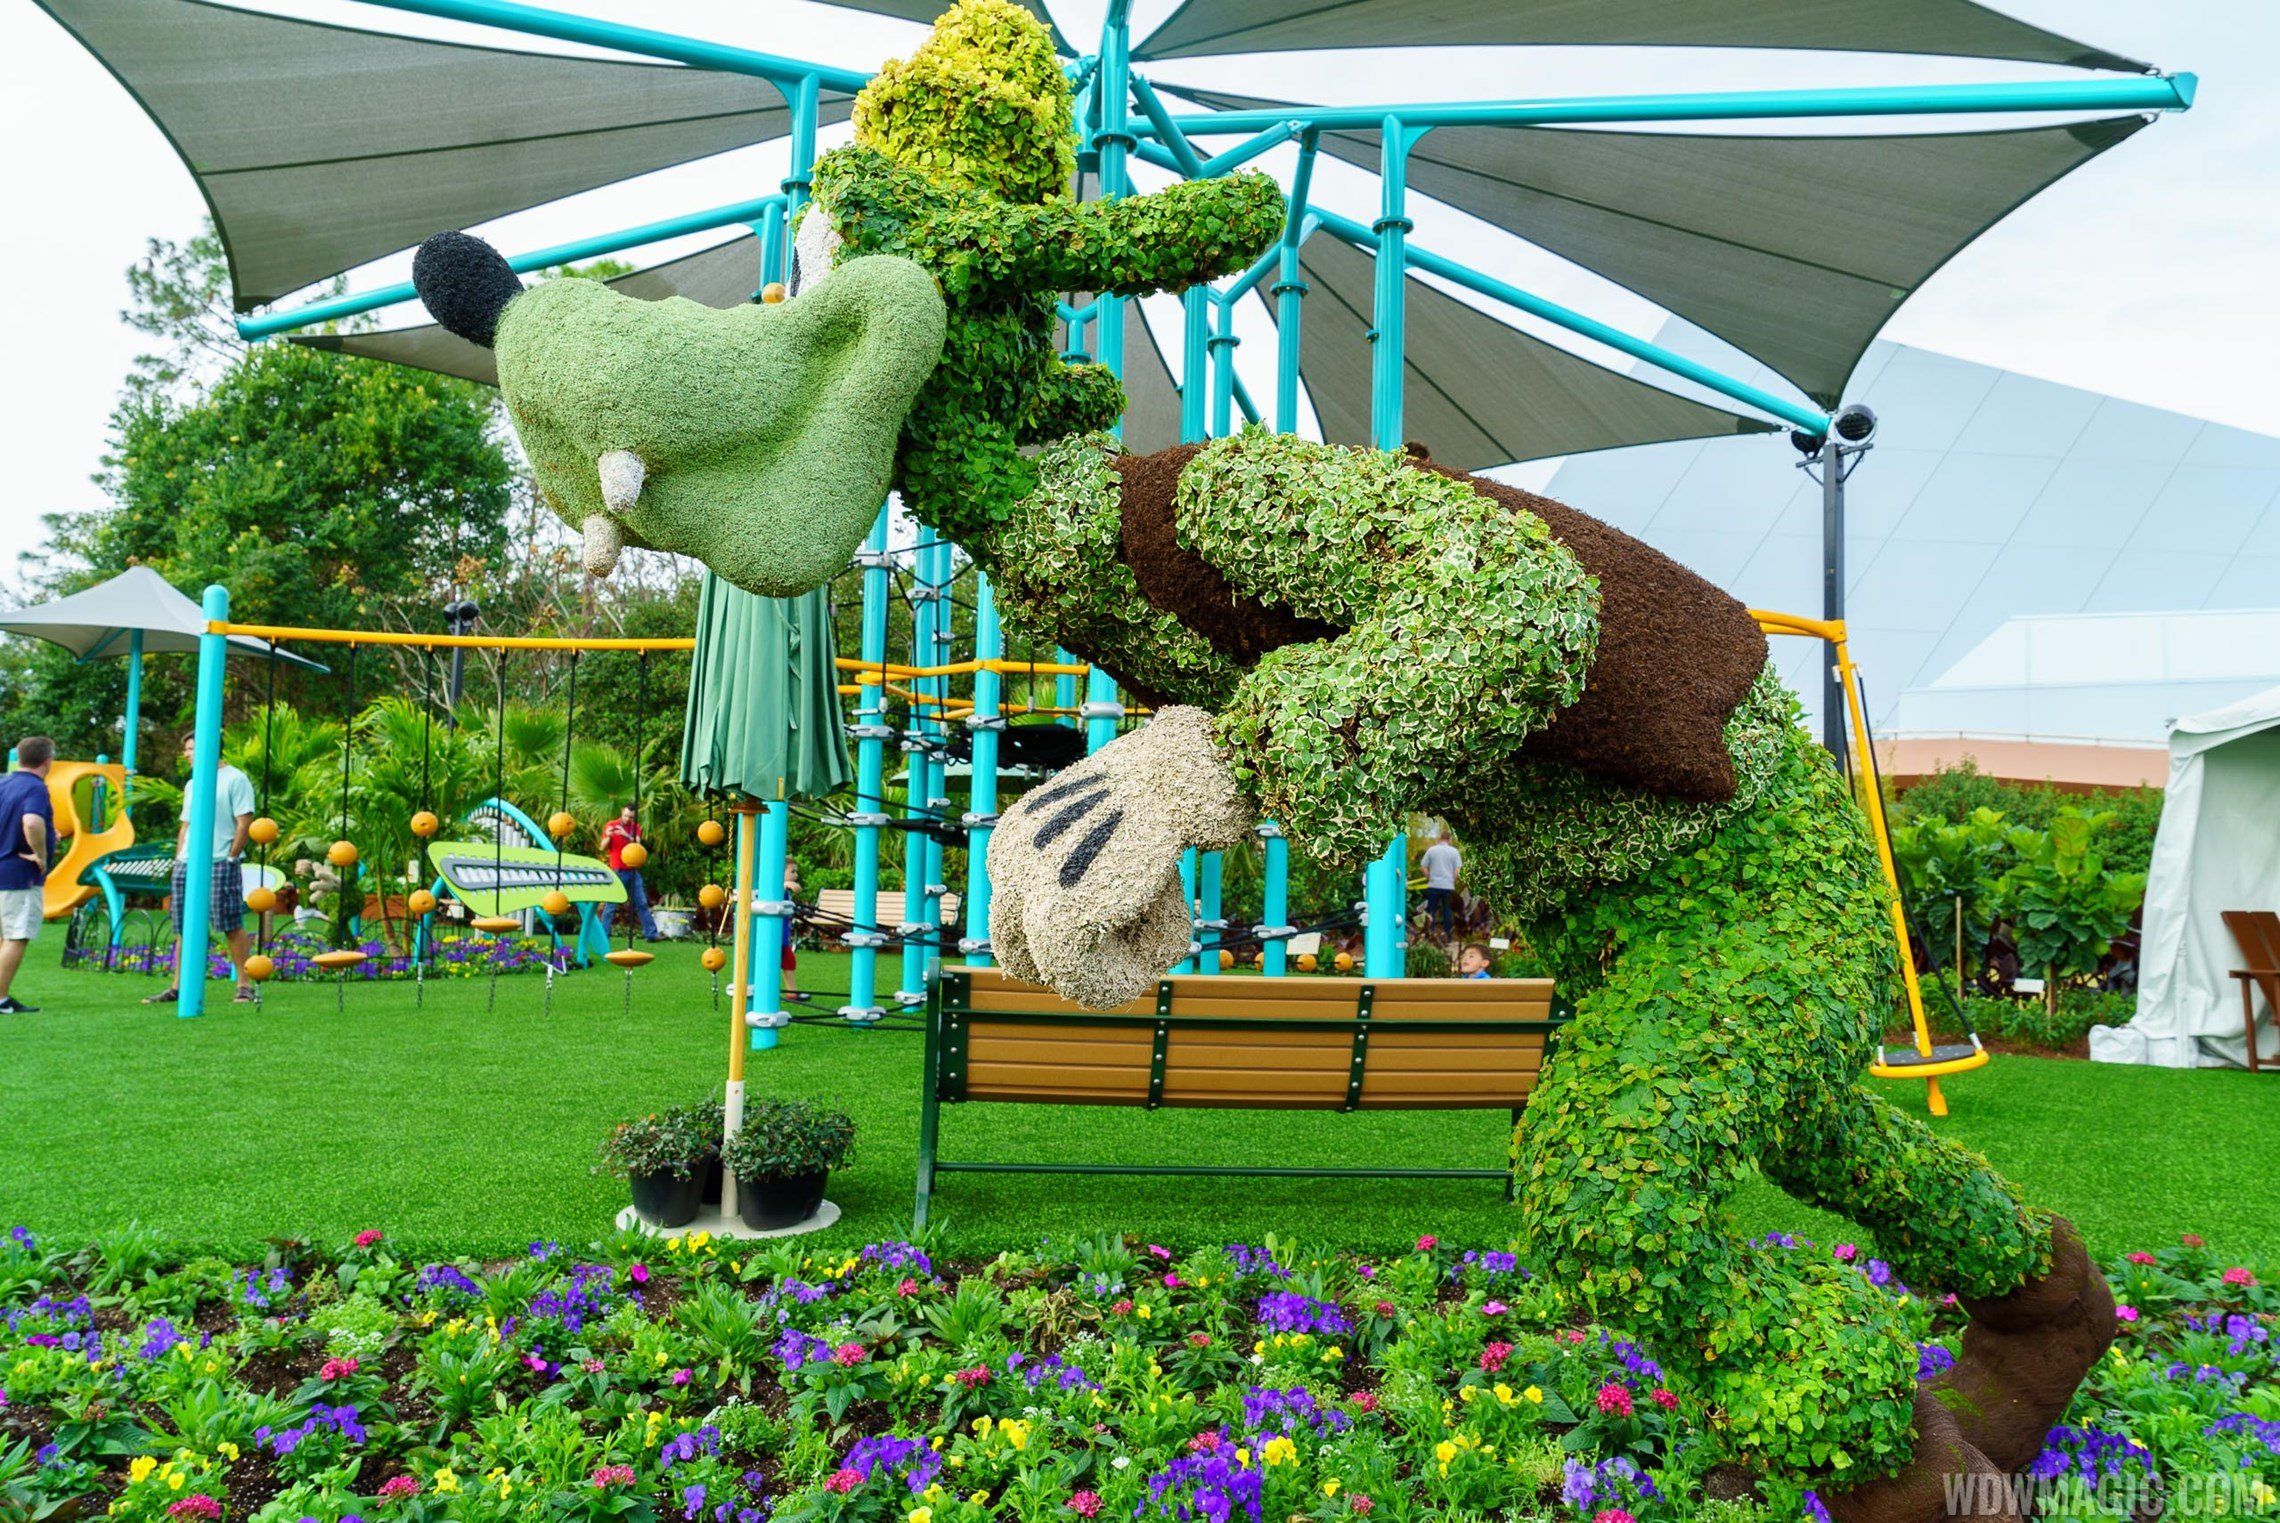 2016 Epcot International Flower and Garden Festival topiary tour 31 o